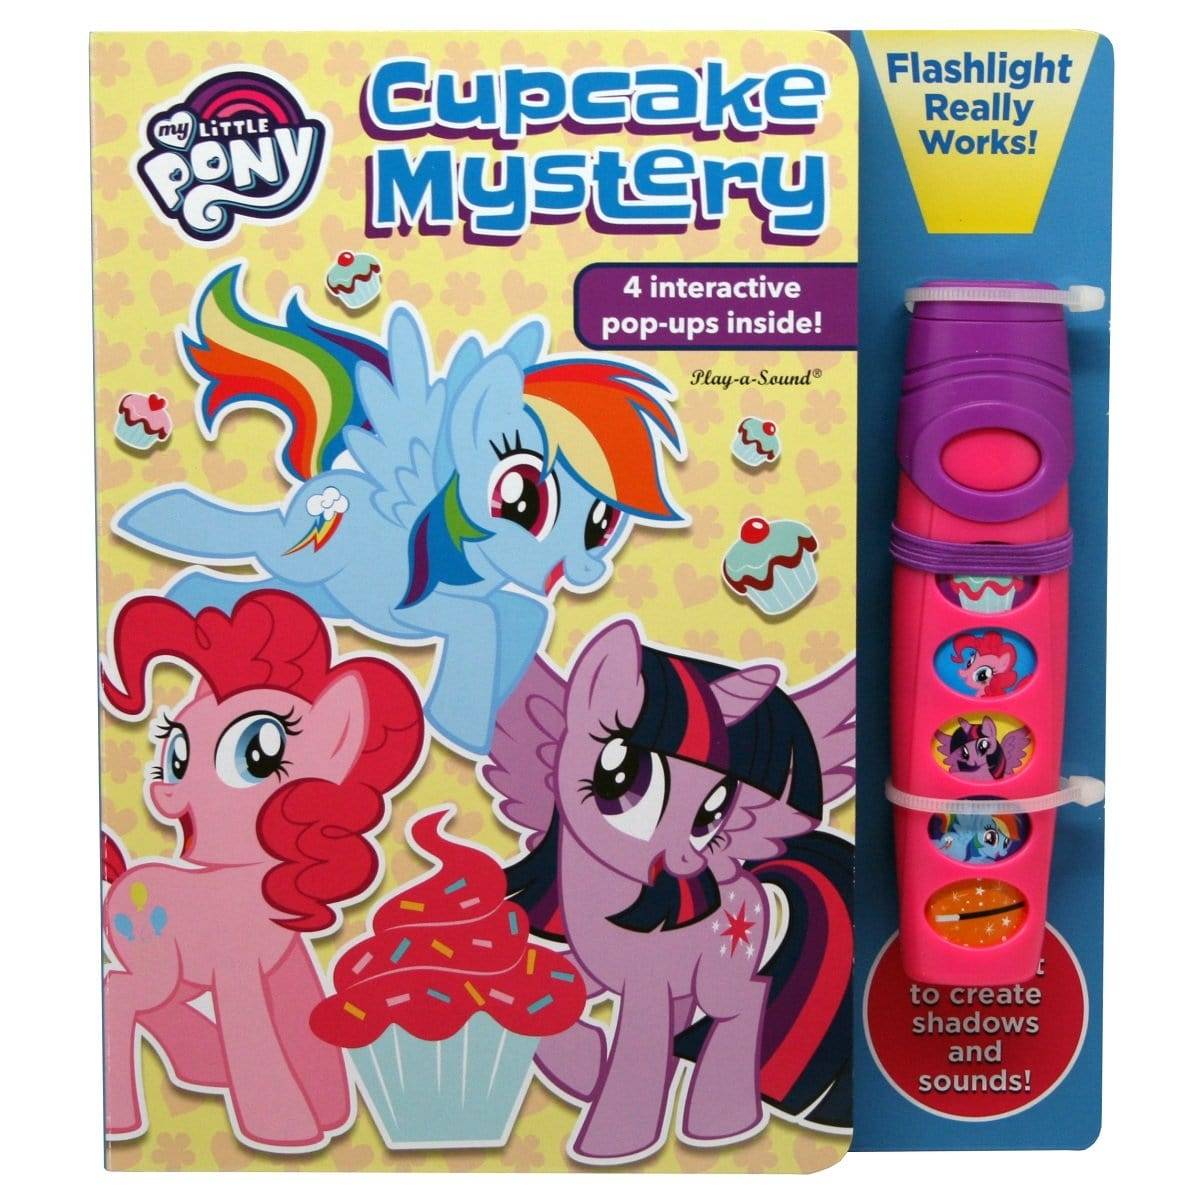 My Little Pony – Cupcake Mystery, A Flashlight Adventure Sound Book